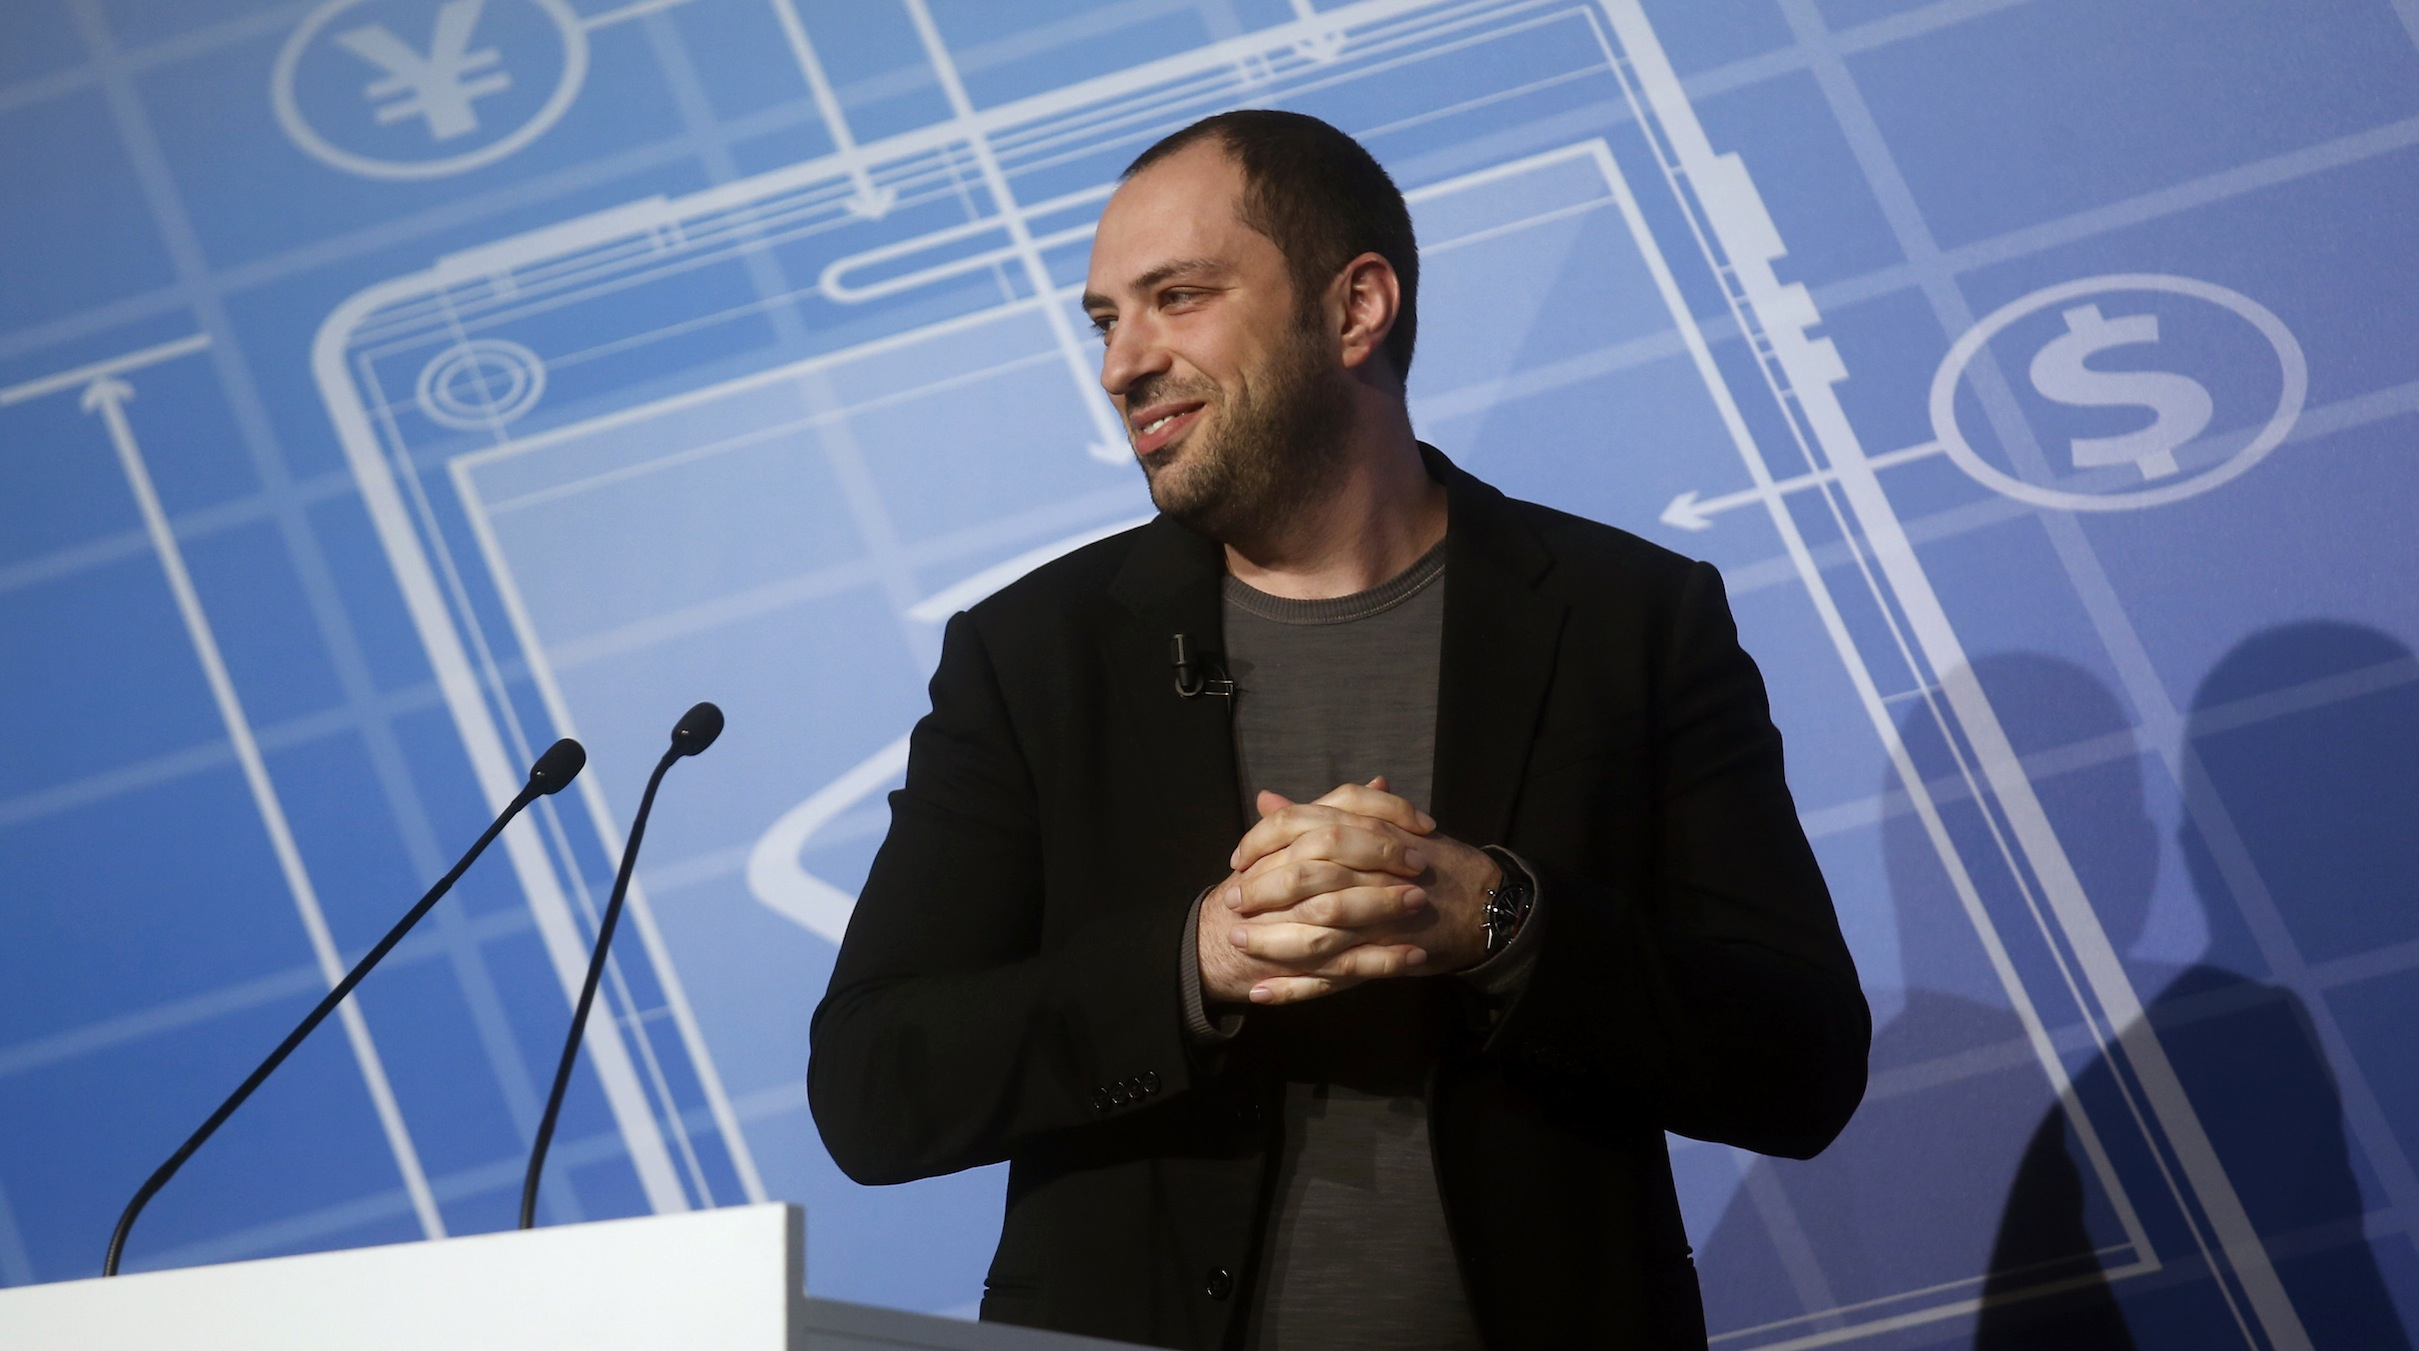 WhatsApp Chief Executive Officer and co-founder Jan Koum delivers a keynote speech at the Mobile World Congress  in Barcelona February 24, 2014. The world's biggest messaging service WhatsApp, which Facebook has just bought for $19 billion, will add voice calls to its product in the second quarter of this year, its chief executive Koum said on Monday. REUTERS/Albert Gea (SPAIN - Tags: BUSINESS TELECOMS) - RTX19EGG